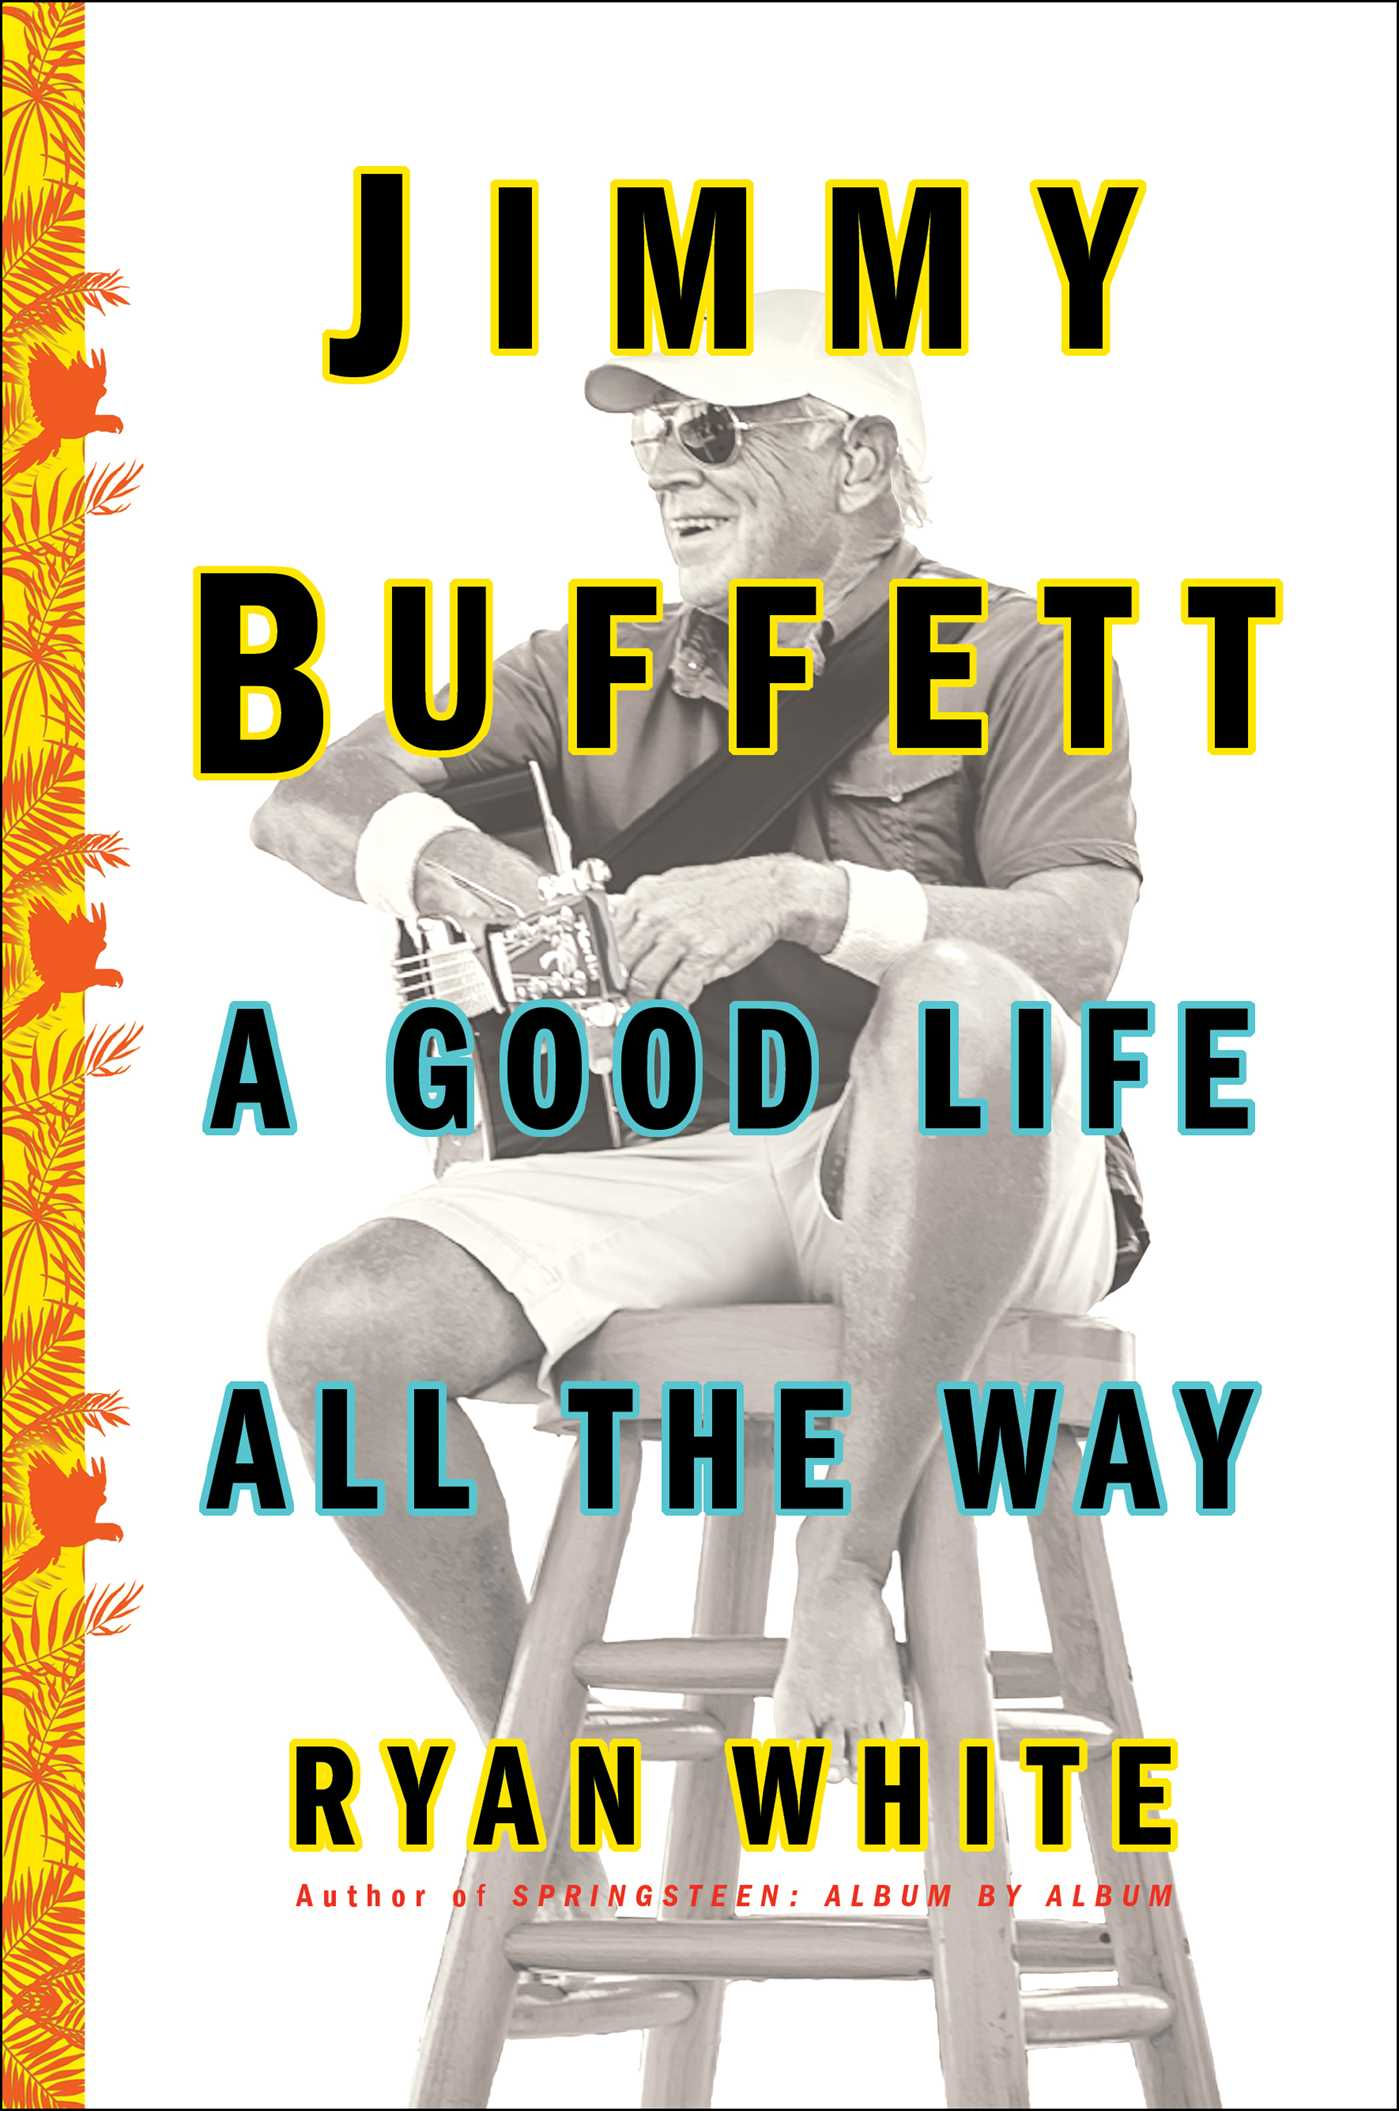 Jimmy buffett 9781501132568 hr